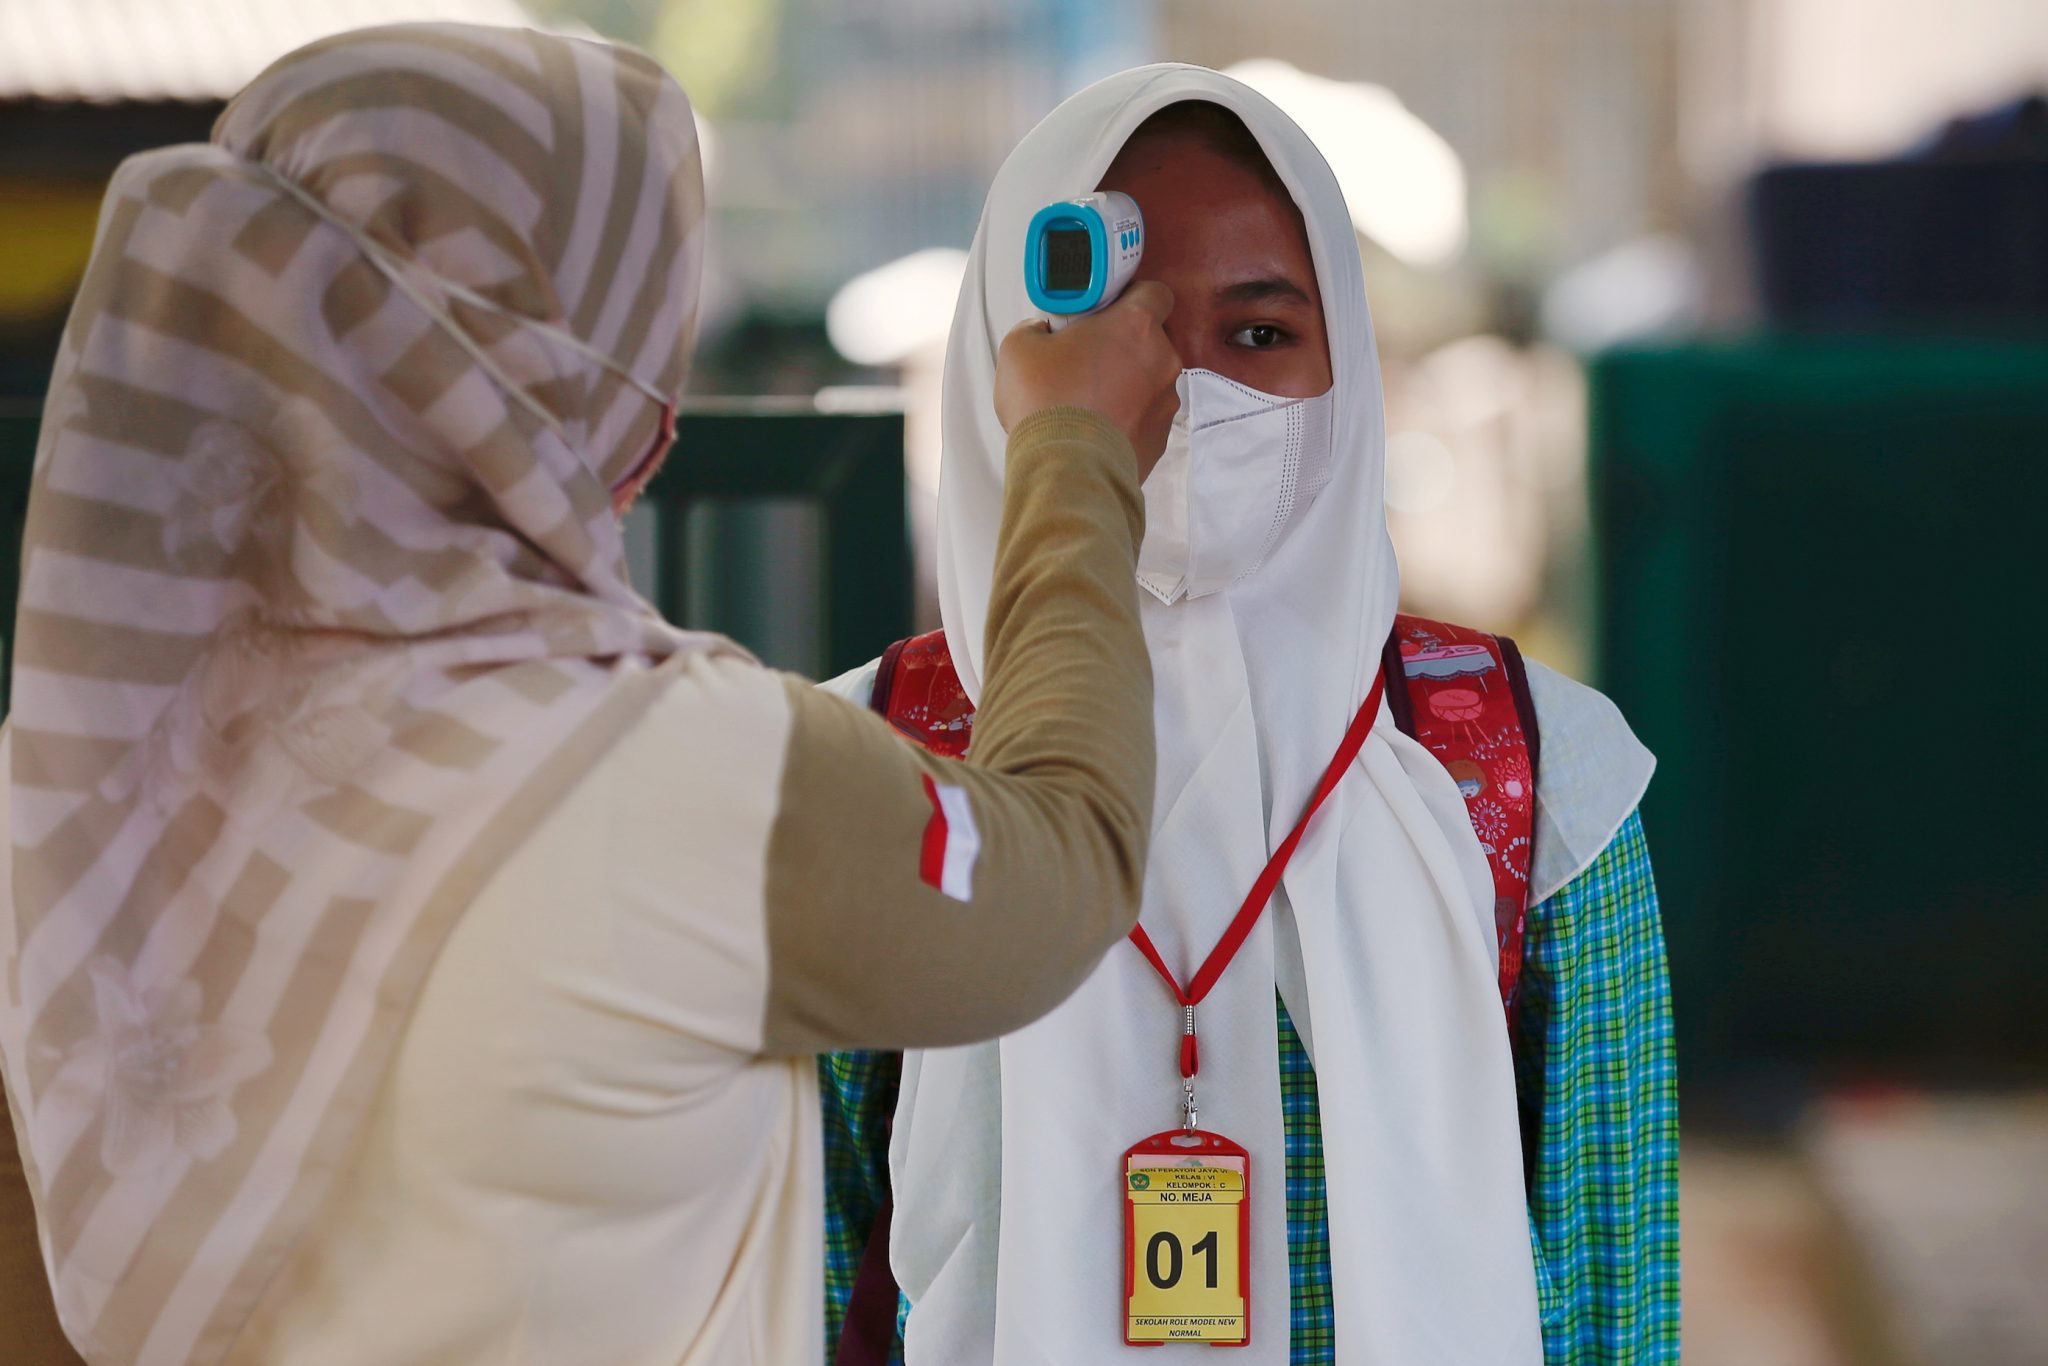 Indonesia's vaccine campaign hits speed bumps